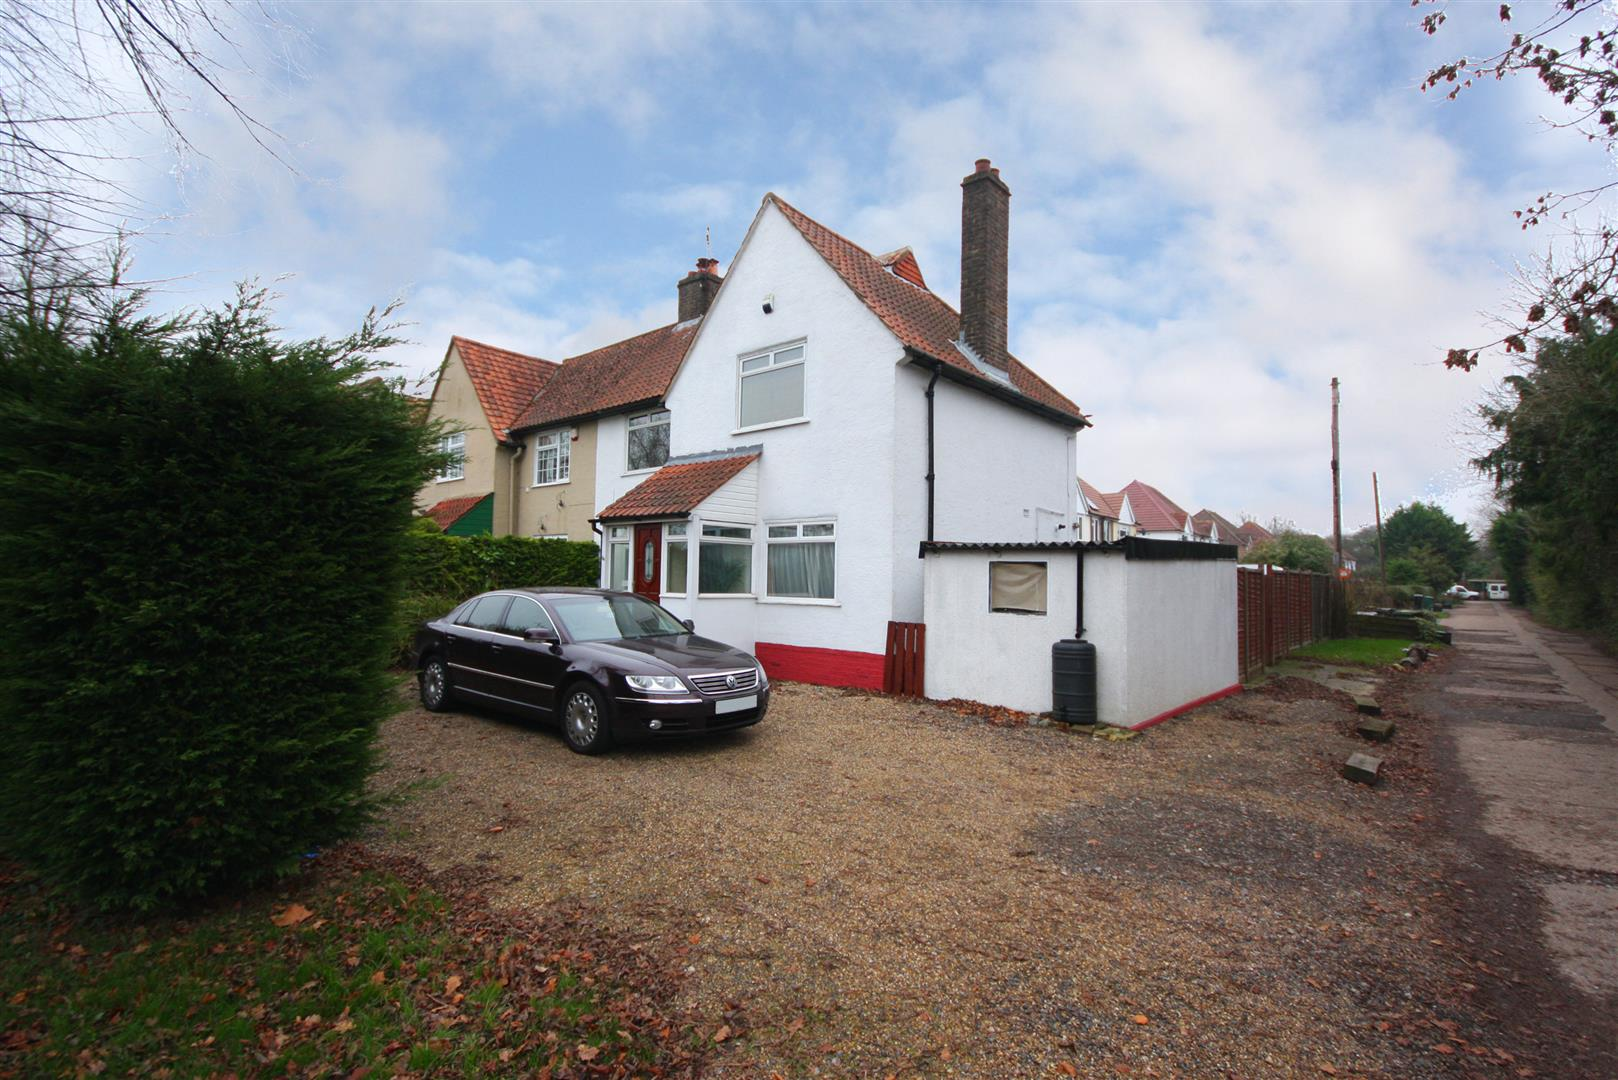 3 Bedrooms Semi Detached House for sale in Beechwood Villas, Salfords